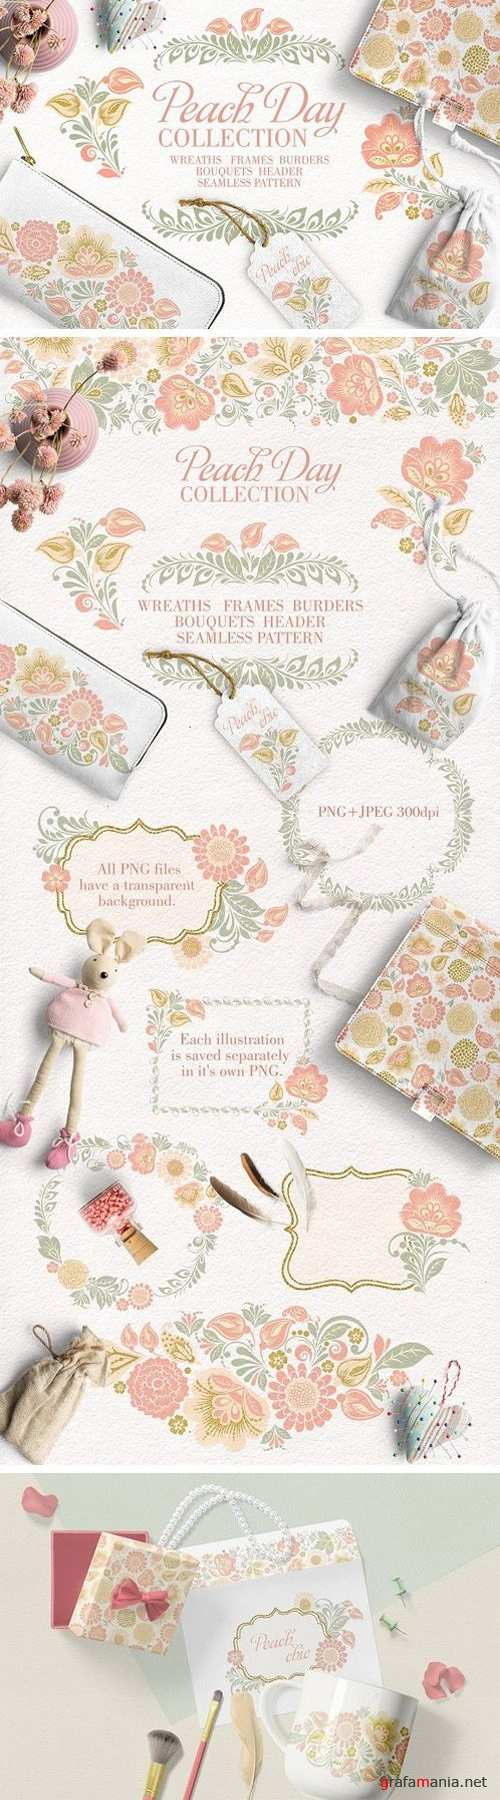 Peach Day glitter floral collection 1772360